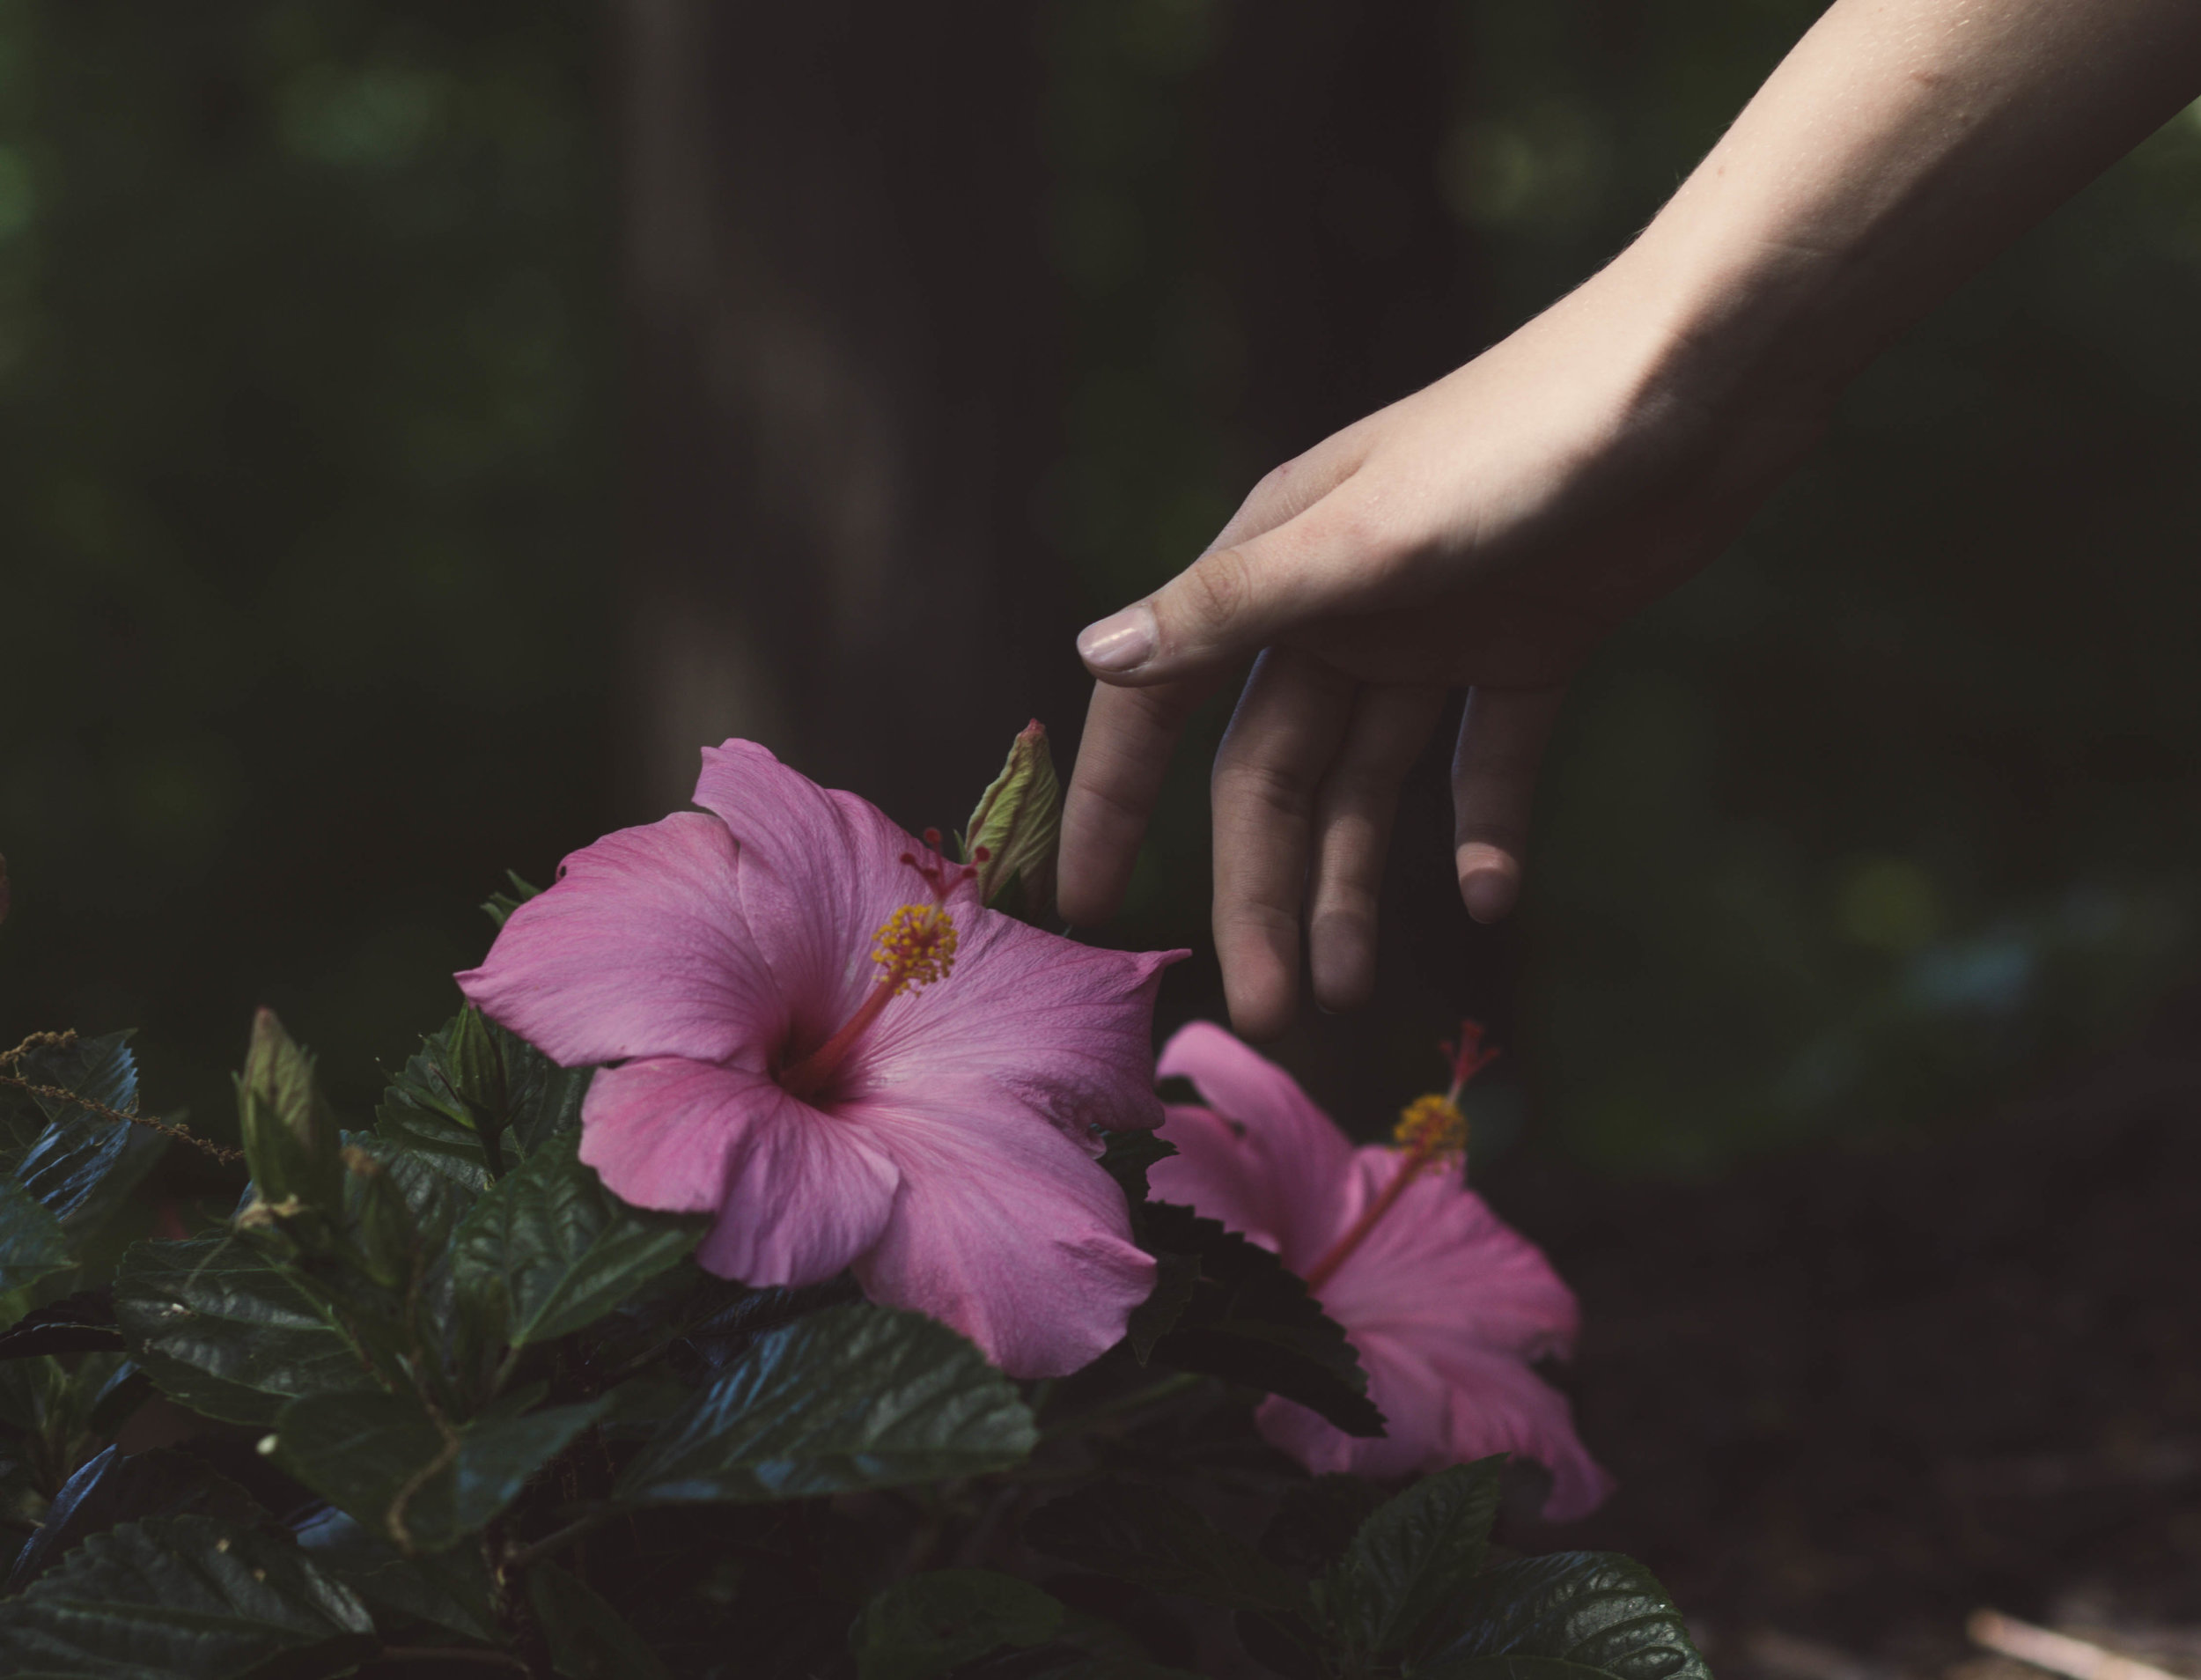 Hand reaching for flowers